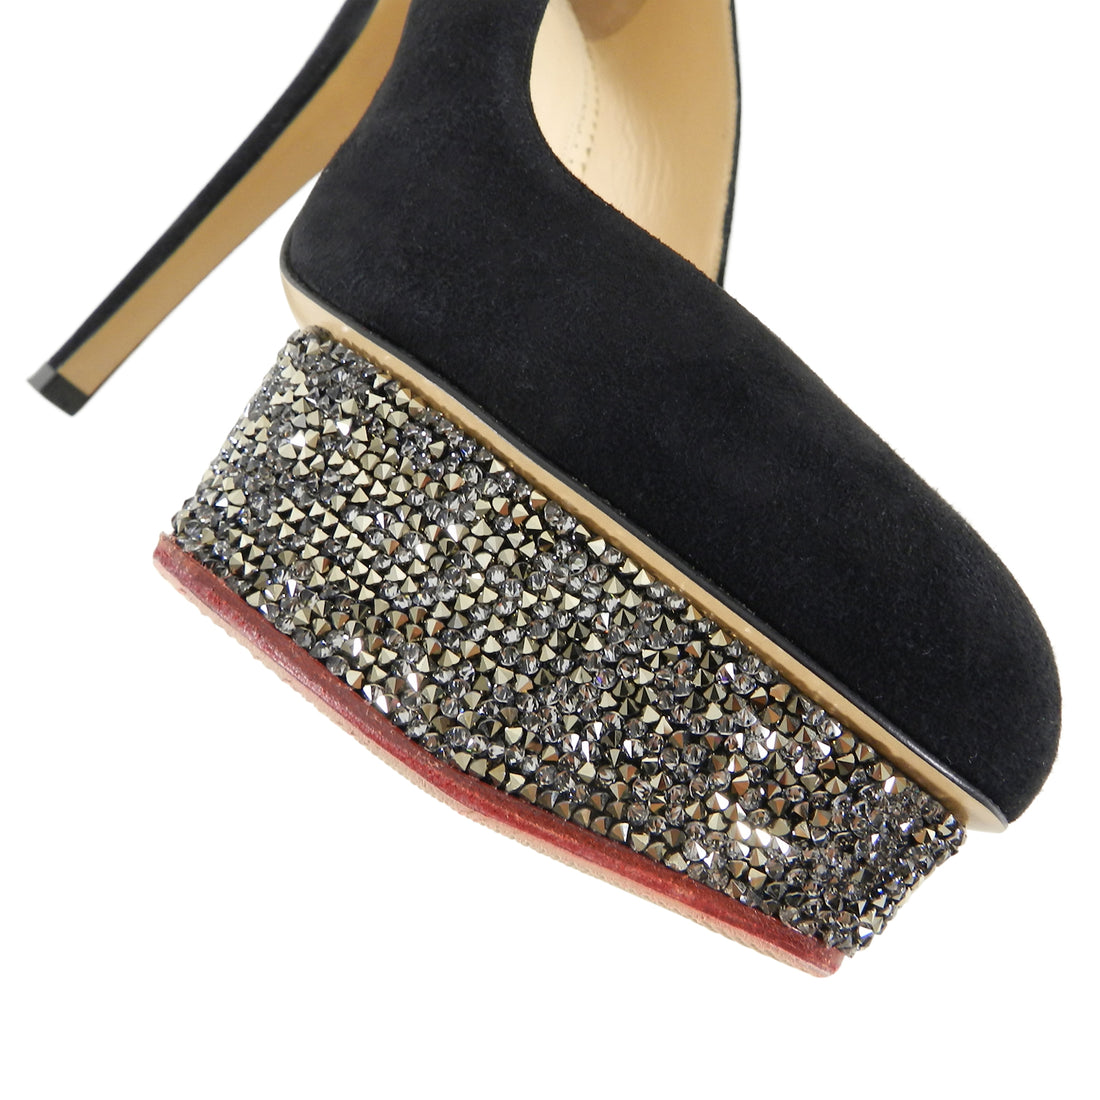 Charlotte Olympia Dolly Crystal Suede 150 mm Platform Pumps - 41